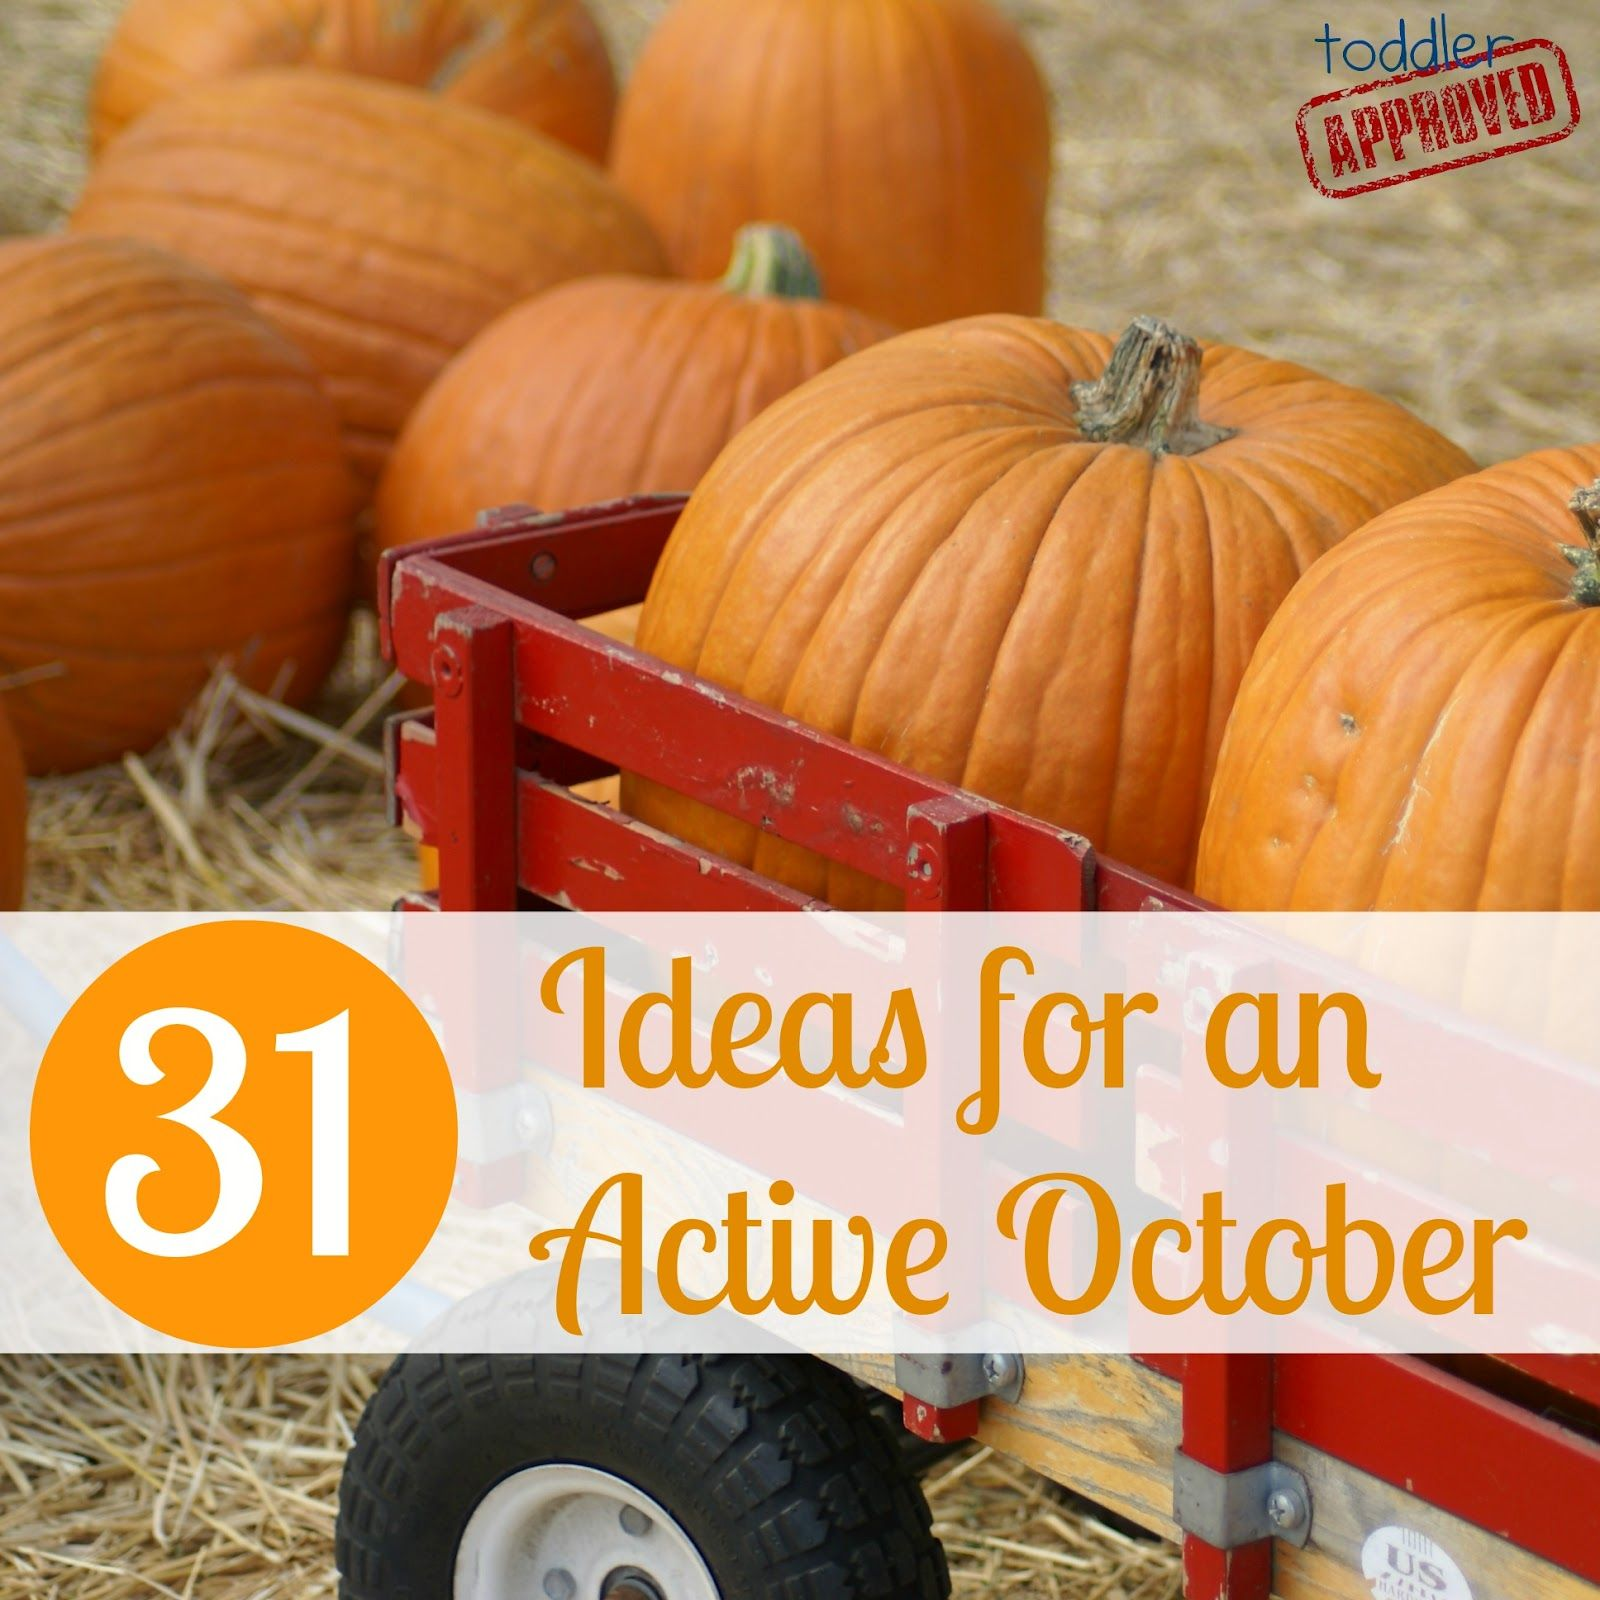 Toddler Approved!: 31 Ideas for an Active October! What are some of your favorite ACTIVE October ideas that we might have missed?